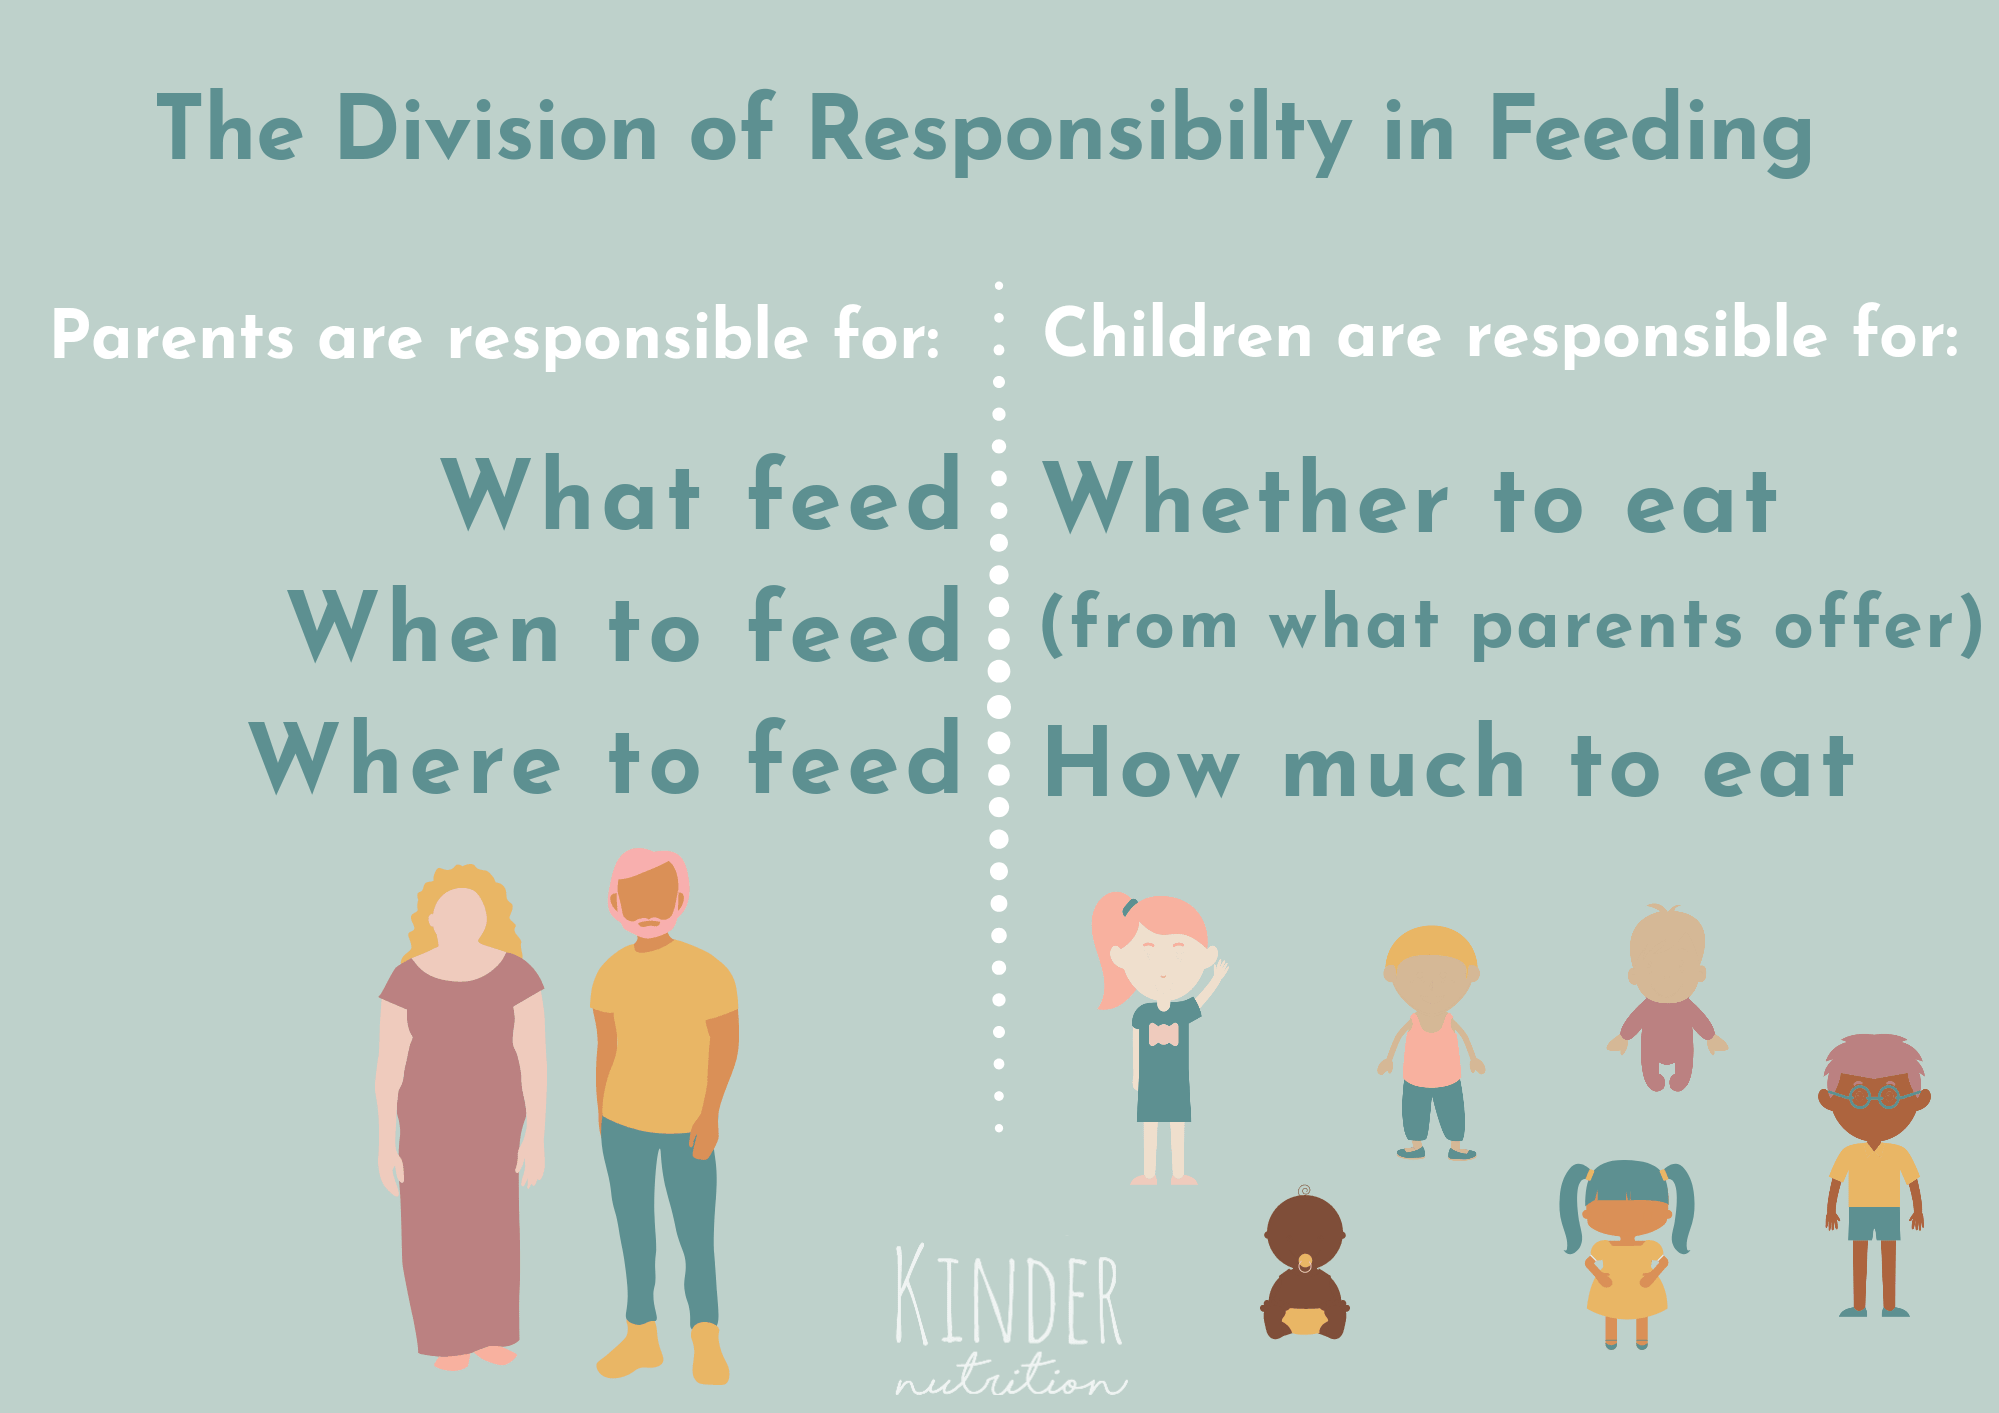 The Division of Responsibility in feeding